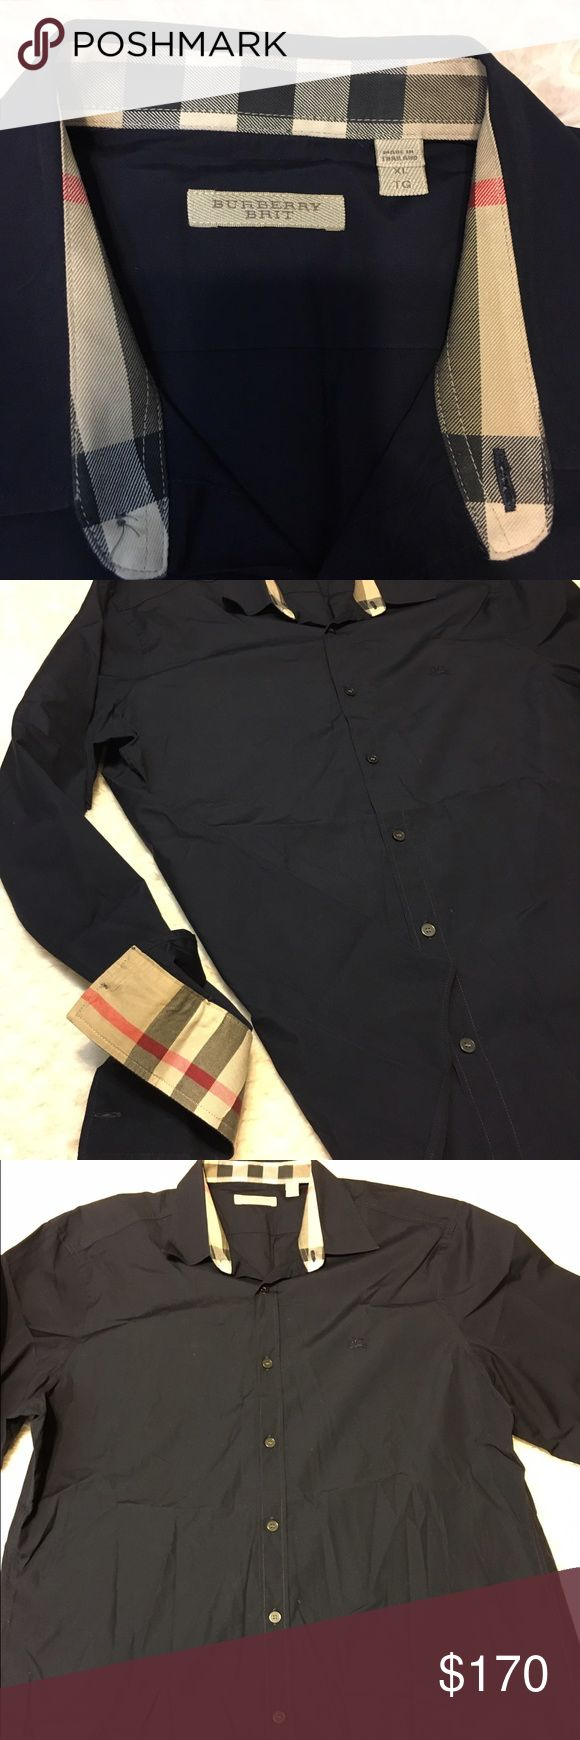 New authentic burberry shirt for men xl New without tags burberry shirt for men 100% authentic original price is 265$ navy blue color size XL Burberry Shirts Casual Button Down Shirts